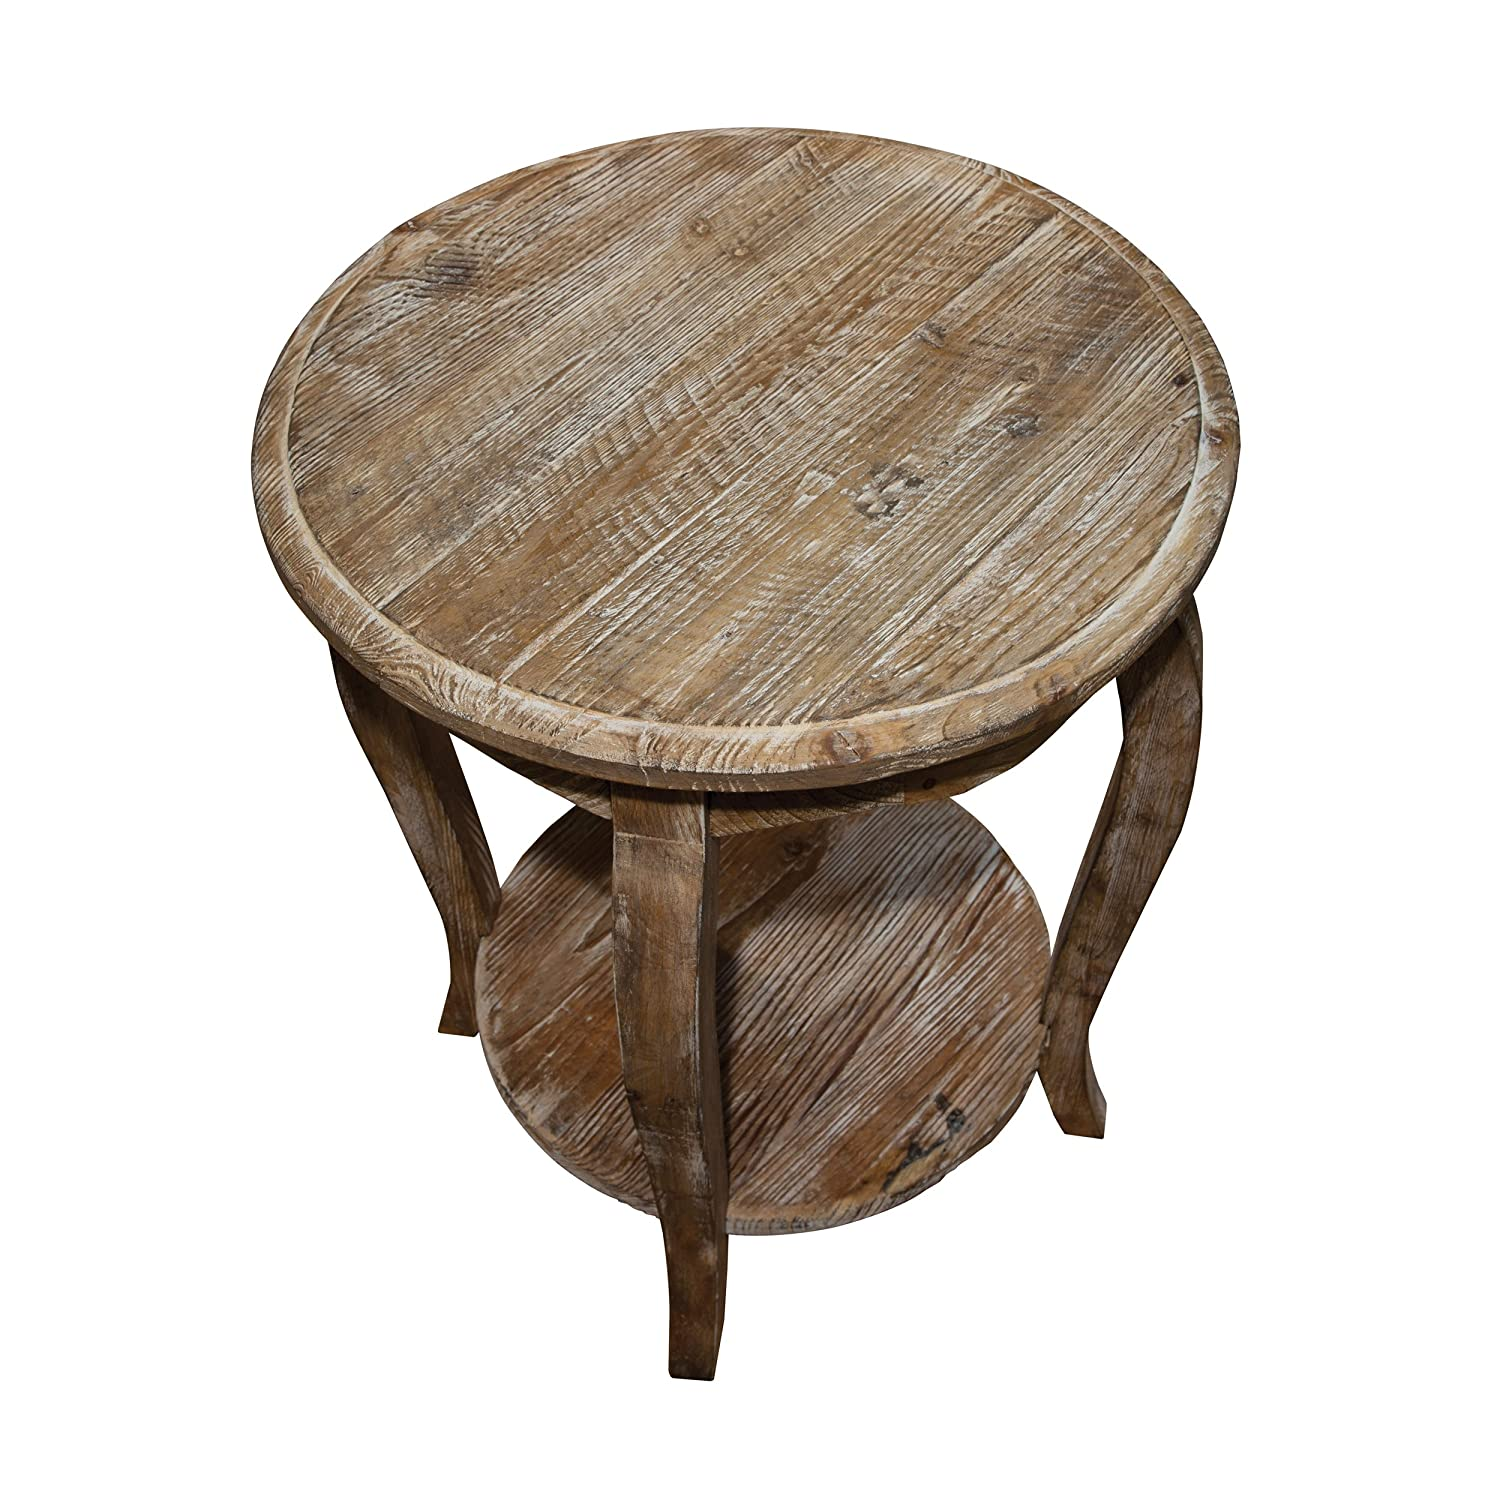 Alaterre Austerity Reclaimed Round End Table, Driftwood